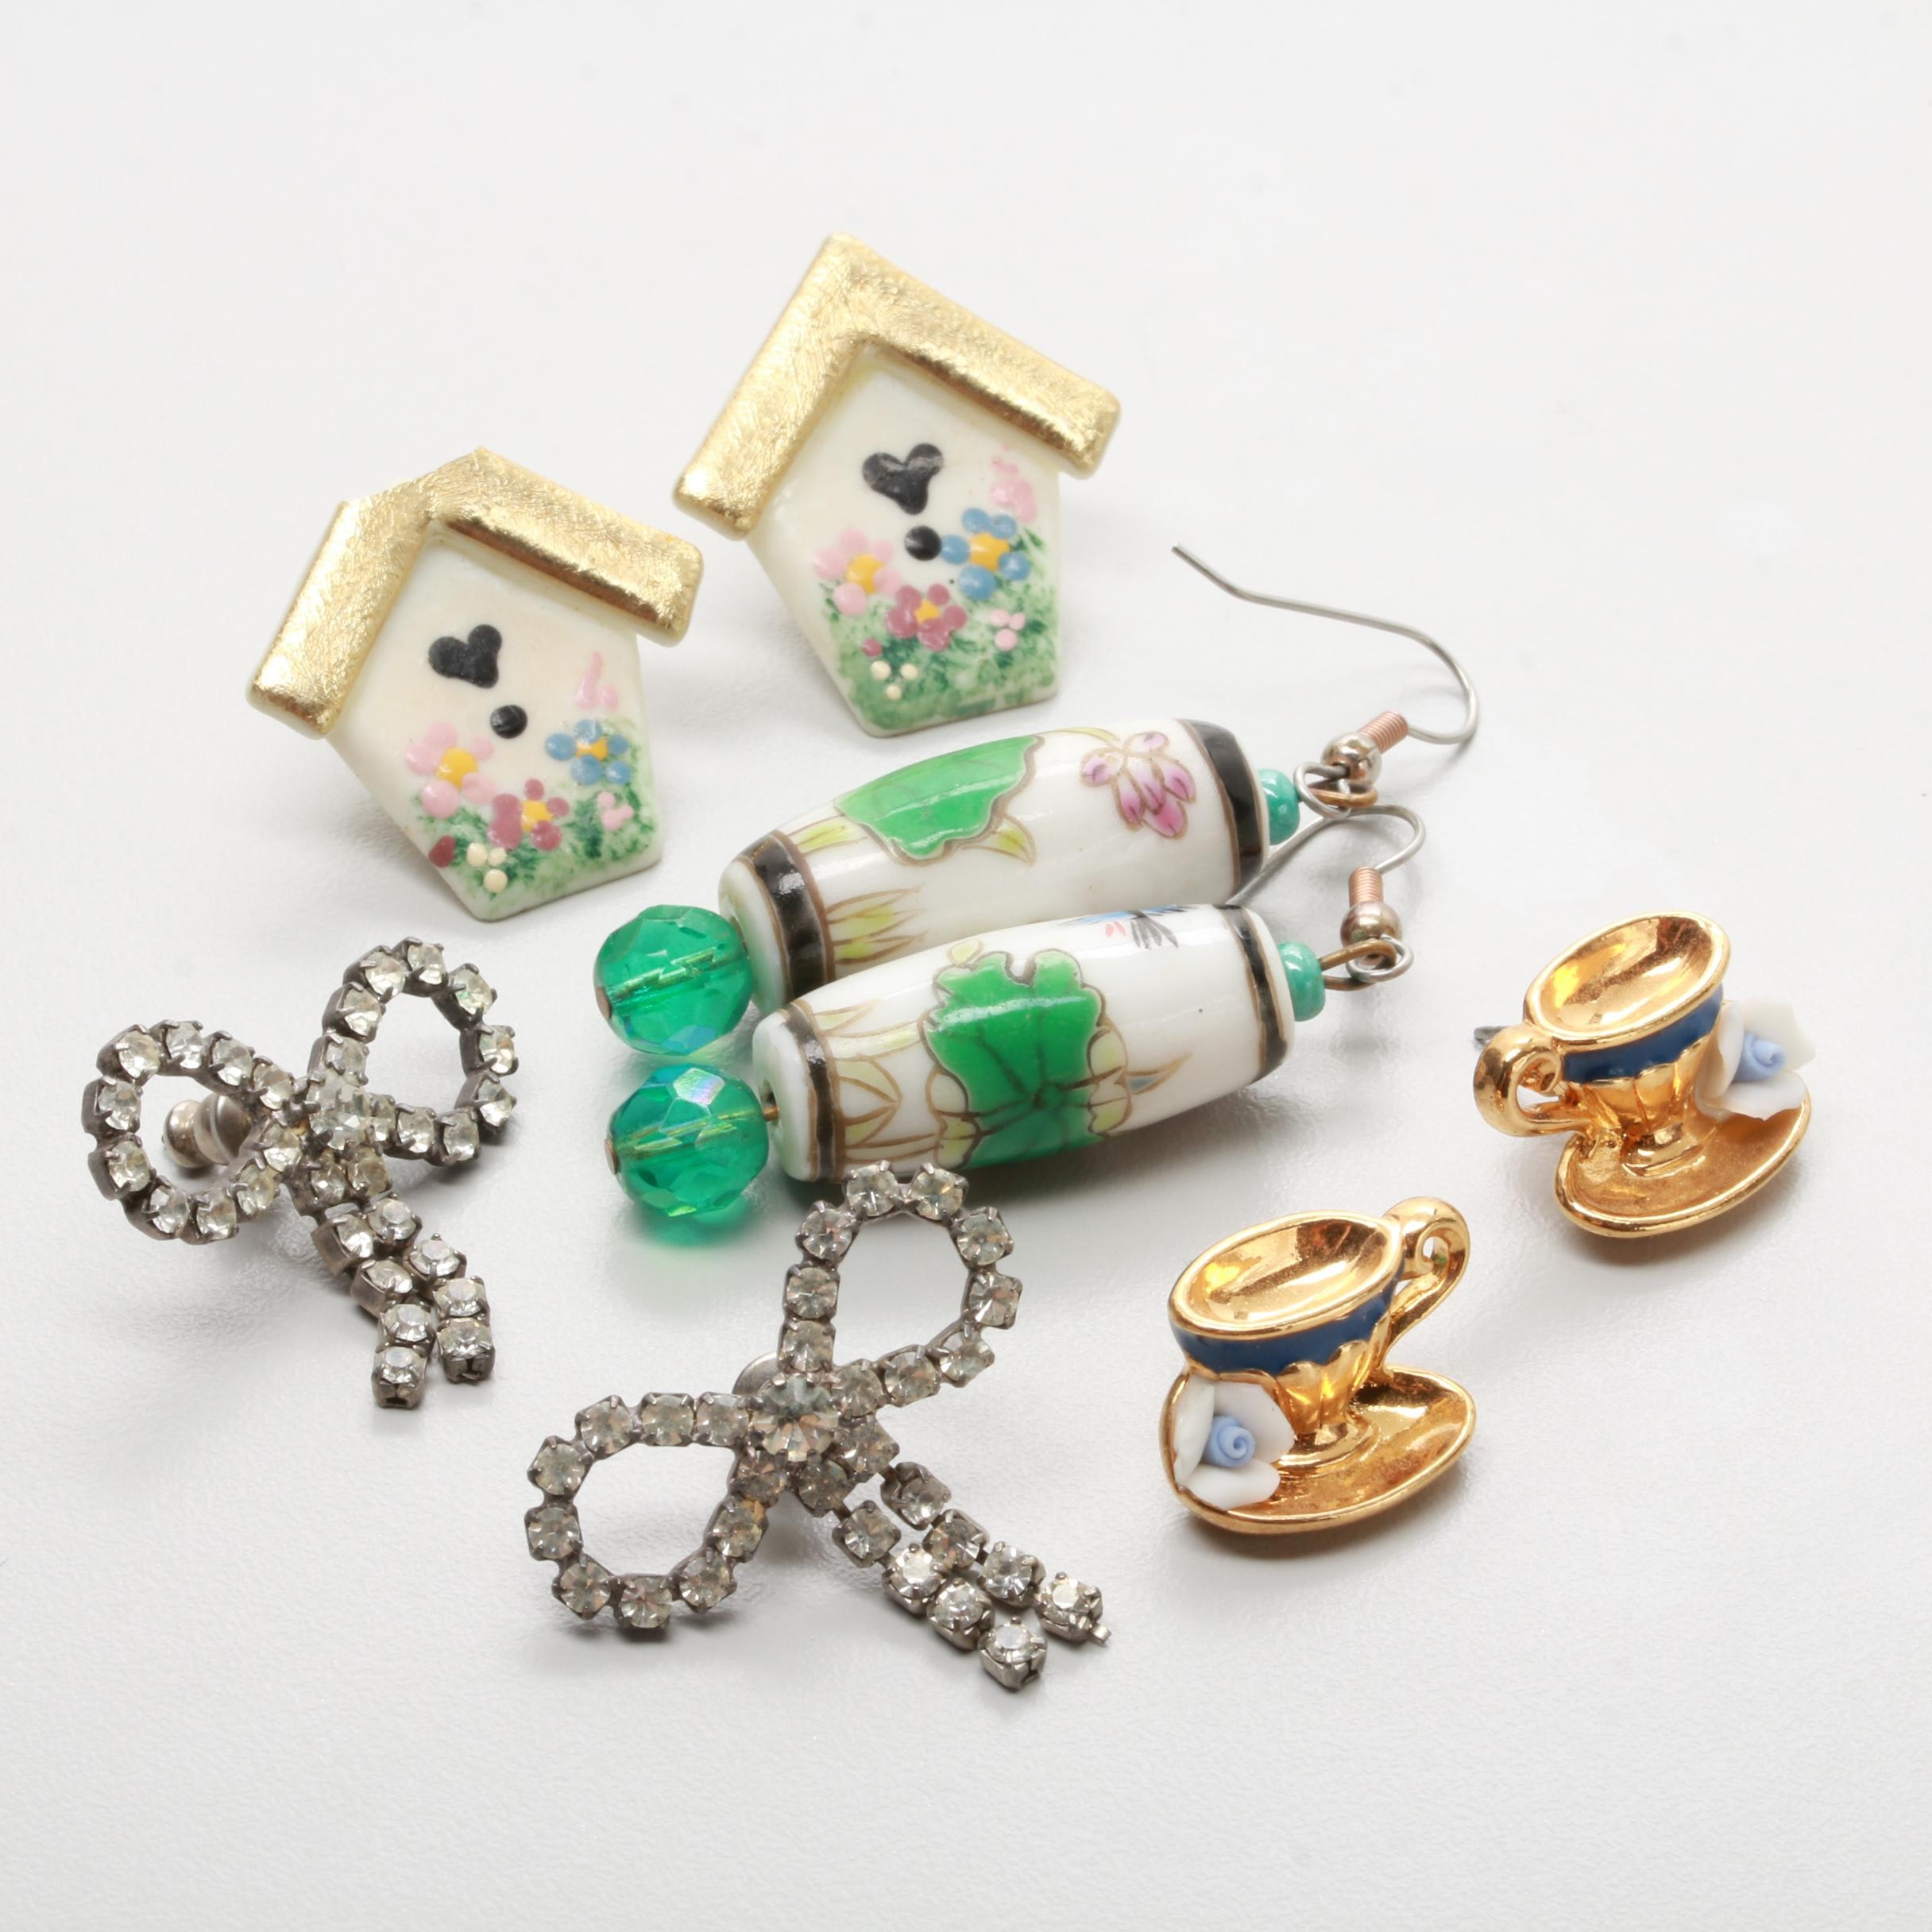 Assortment of Earrings Including Porcelain, Glass Crystal, and Enamel